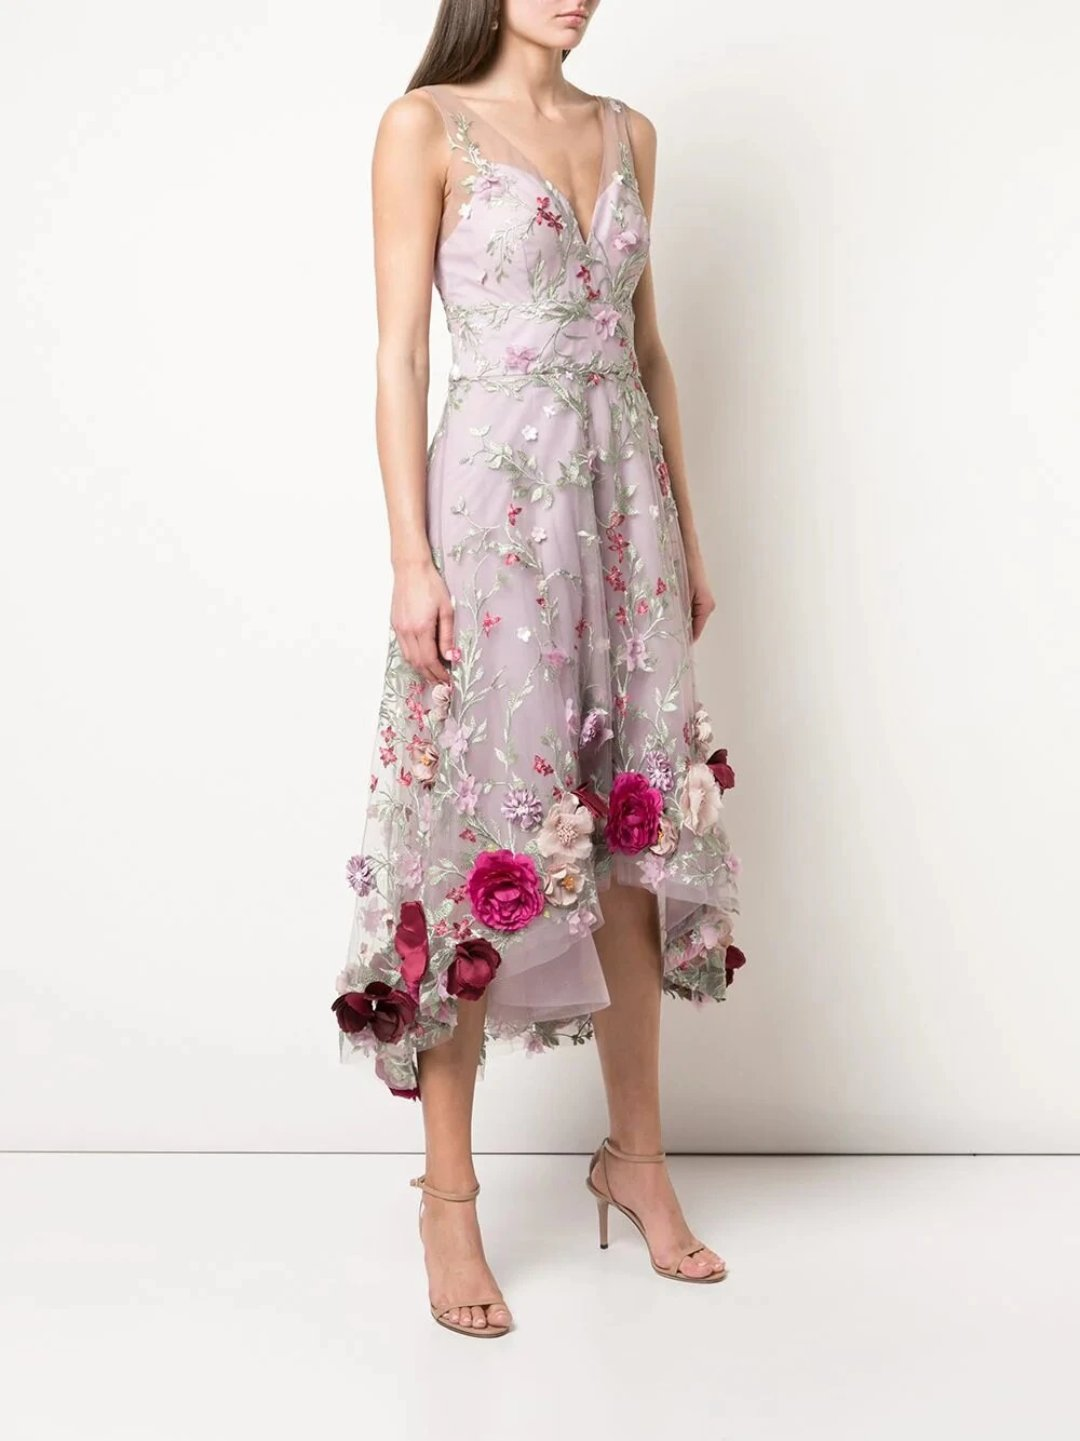 3D Floral Embroidered Hi-Low Cocktail Dress